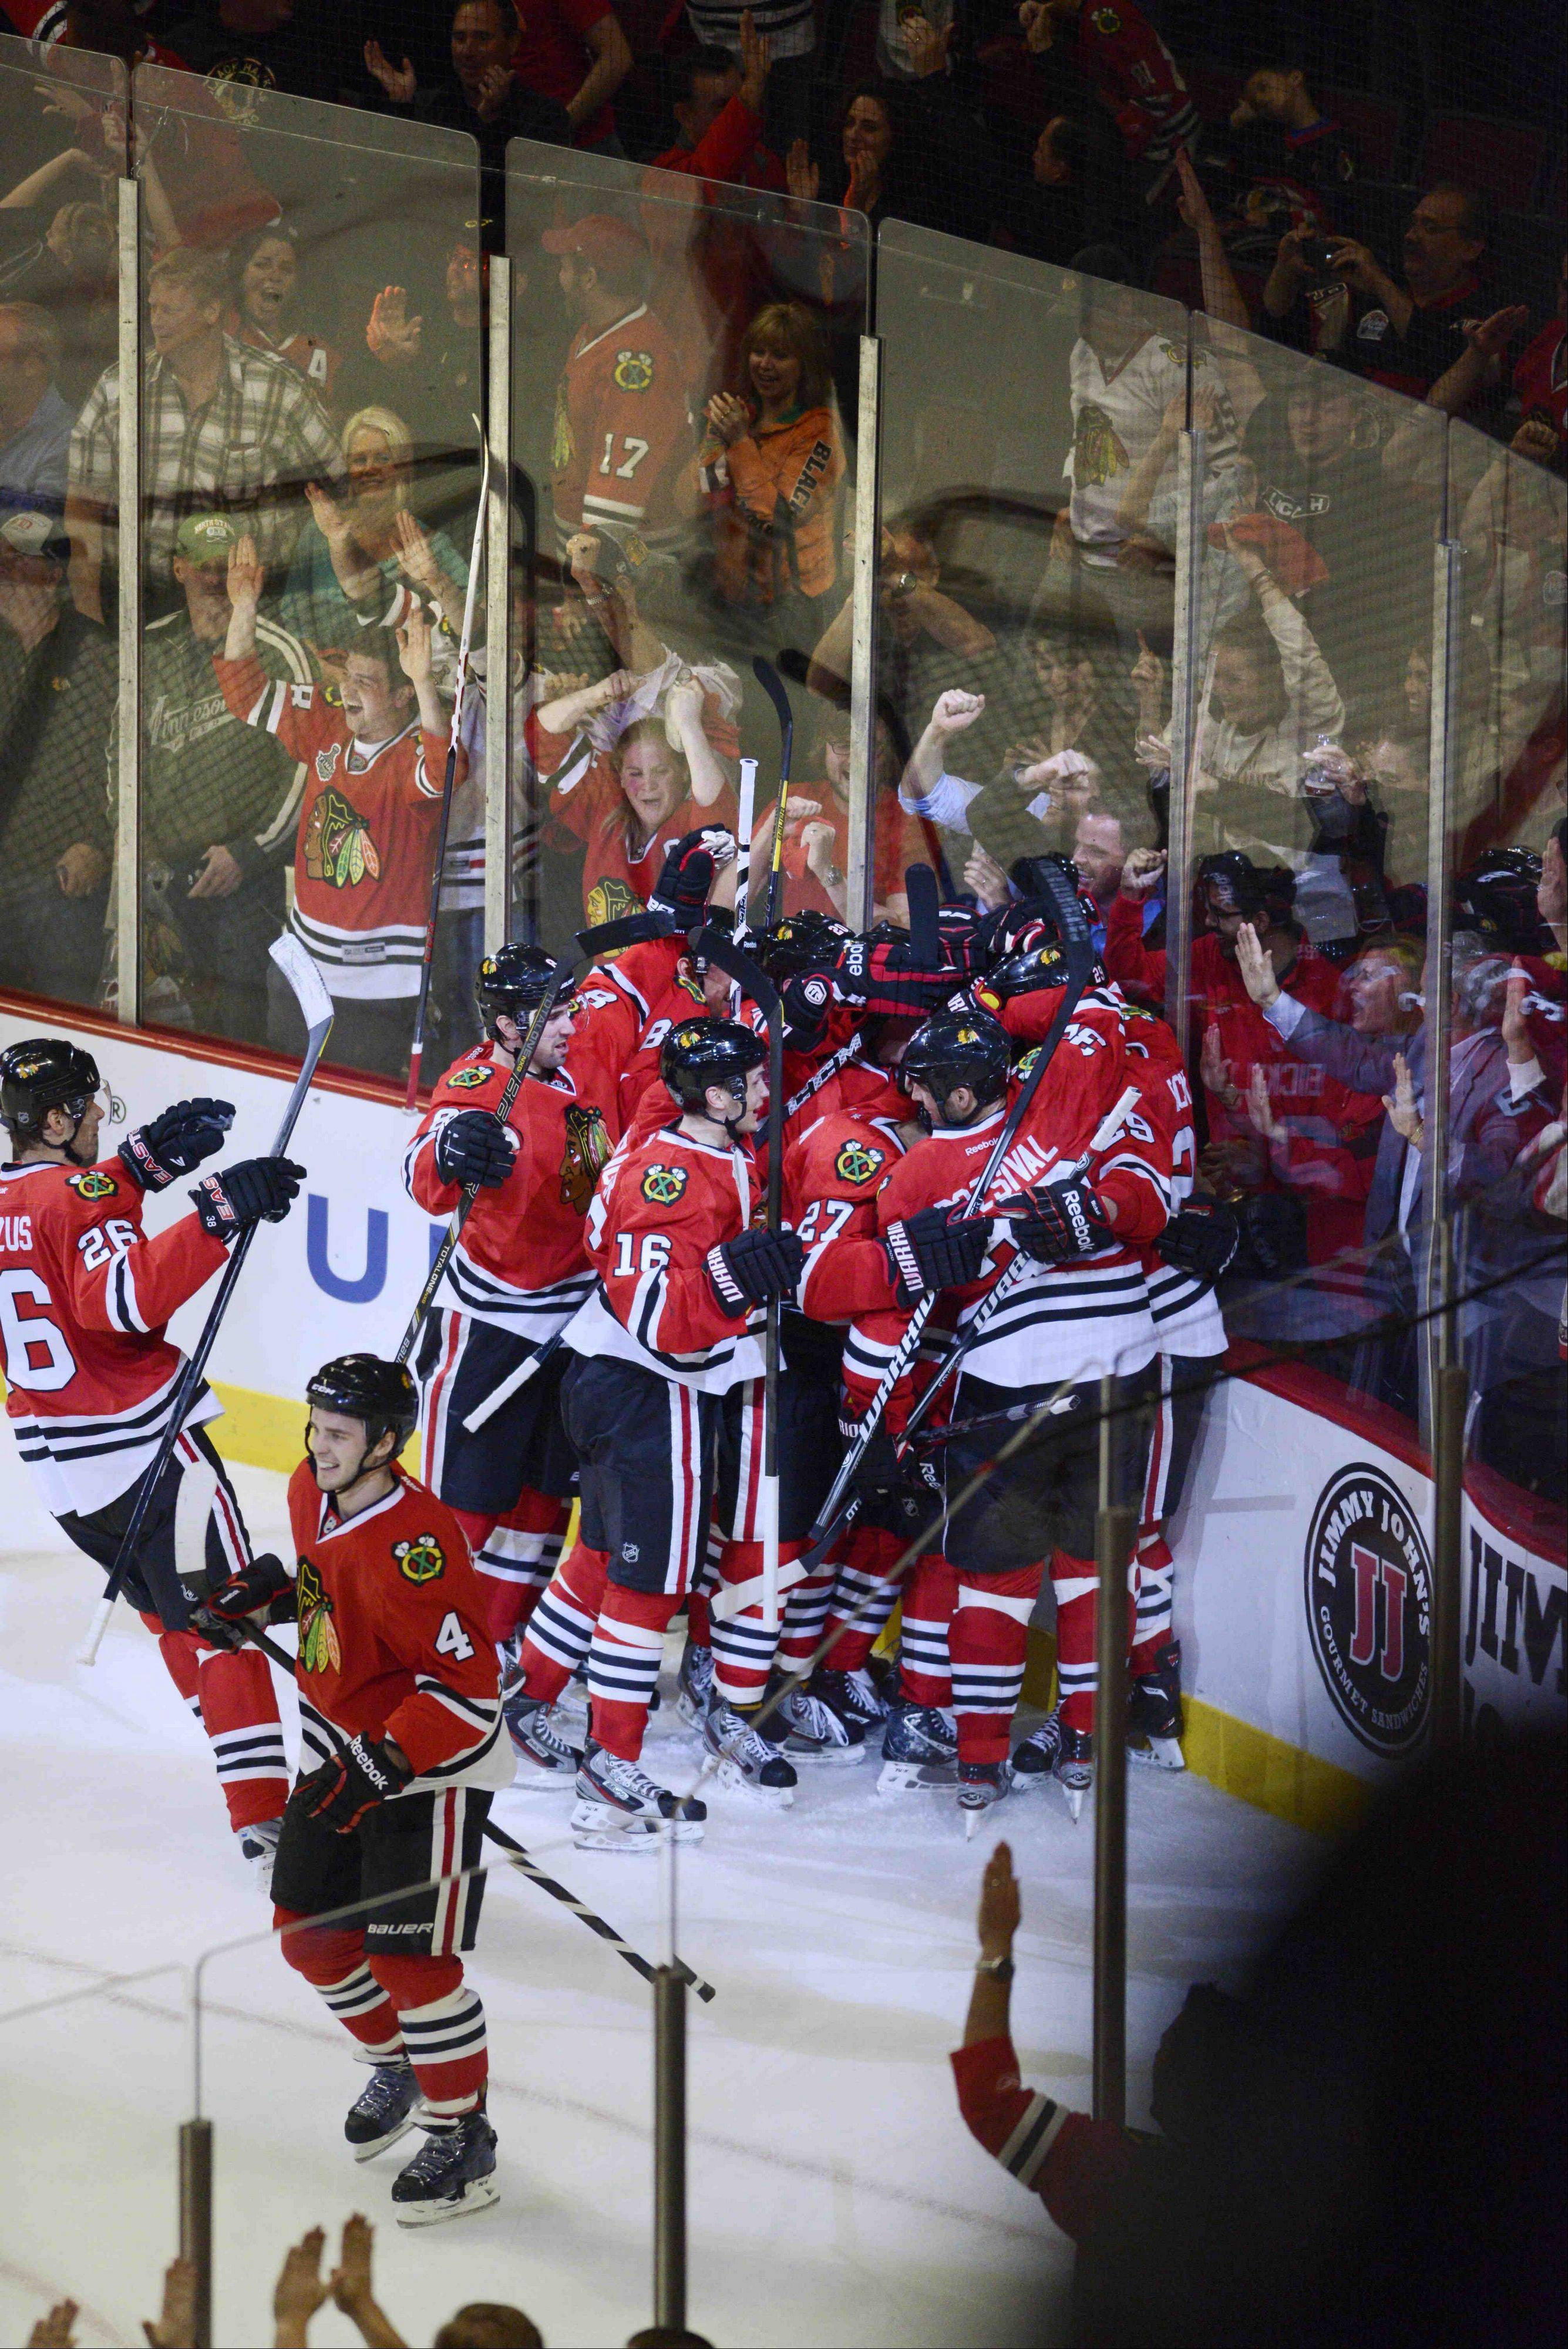 Defenseman Johnny Oduya's long off-the-glass pass in overtime set up this Game 1 celebration at the United Center.